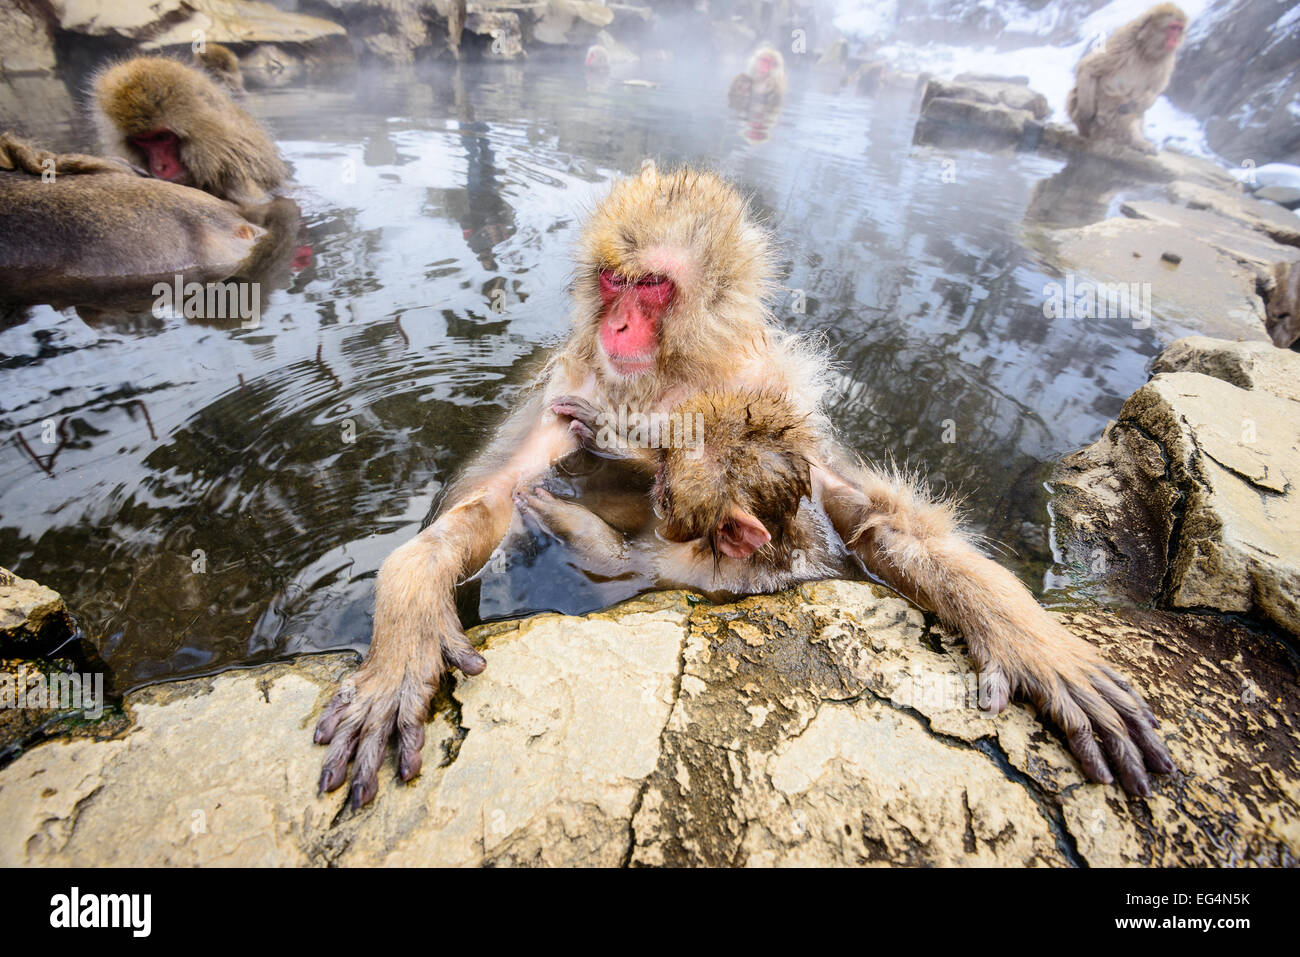 Snow Monkeys in Nagano, Japan. - Stock Image